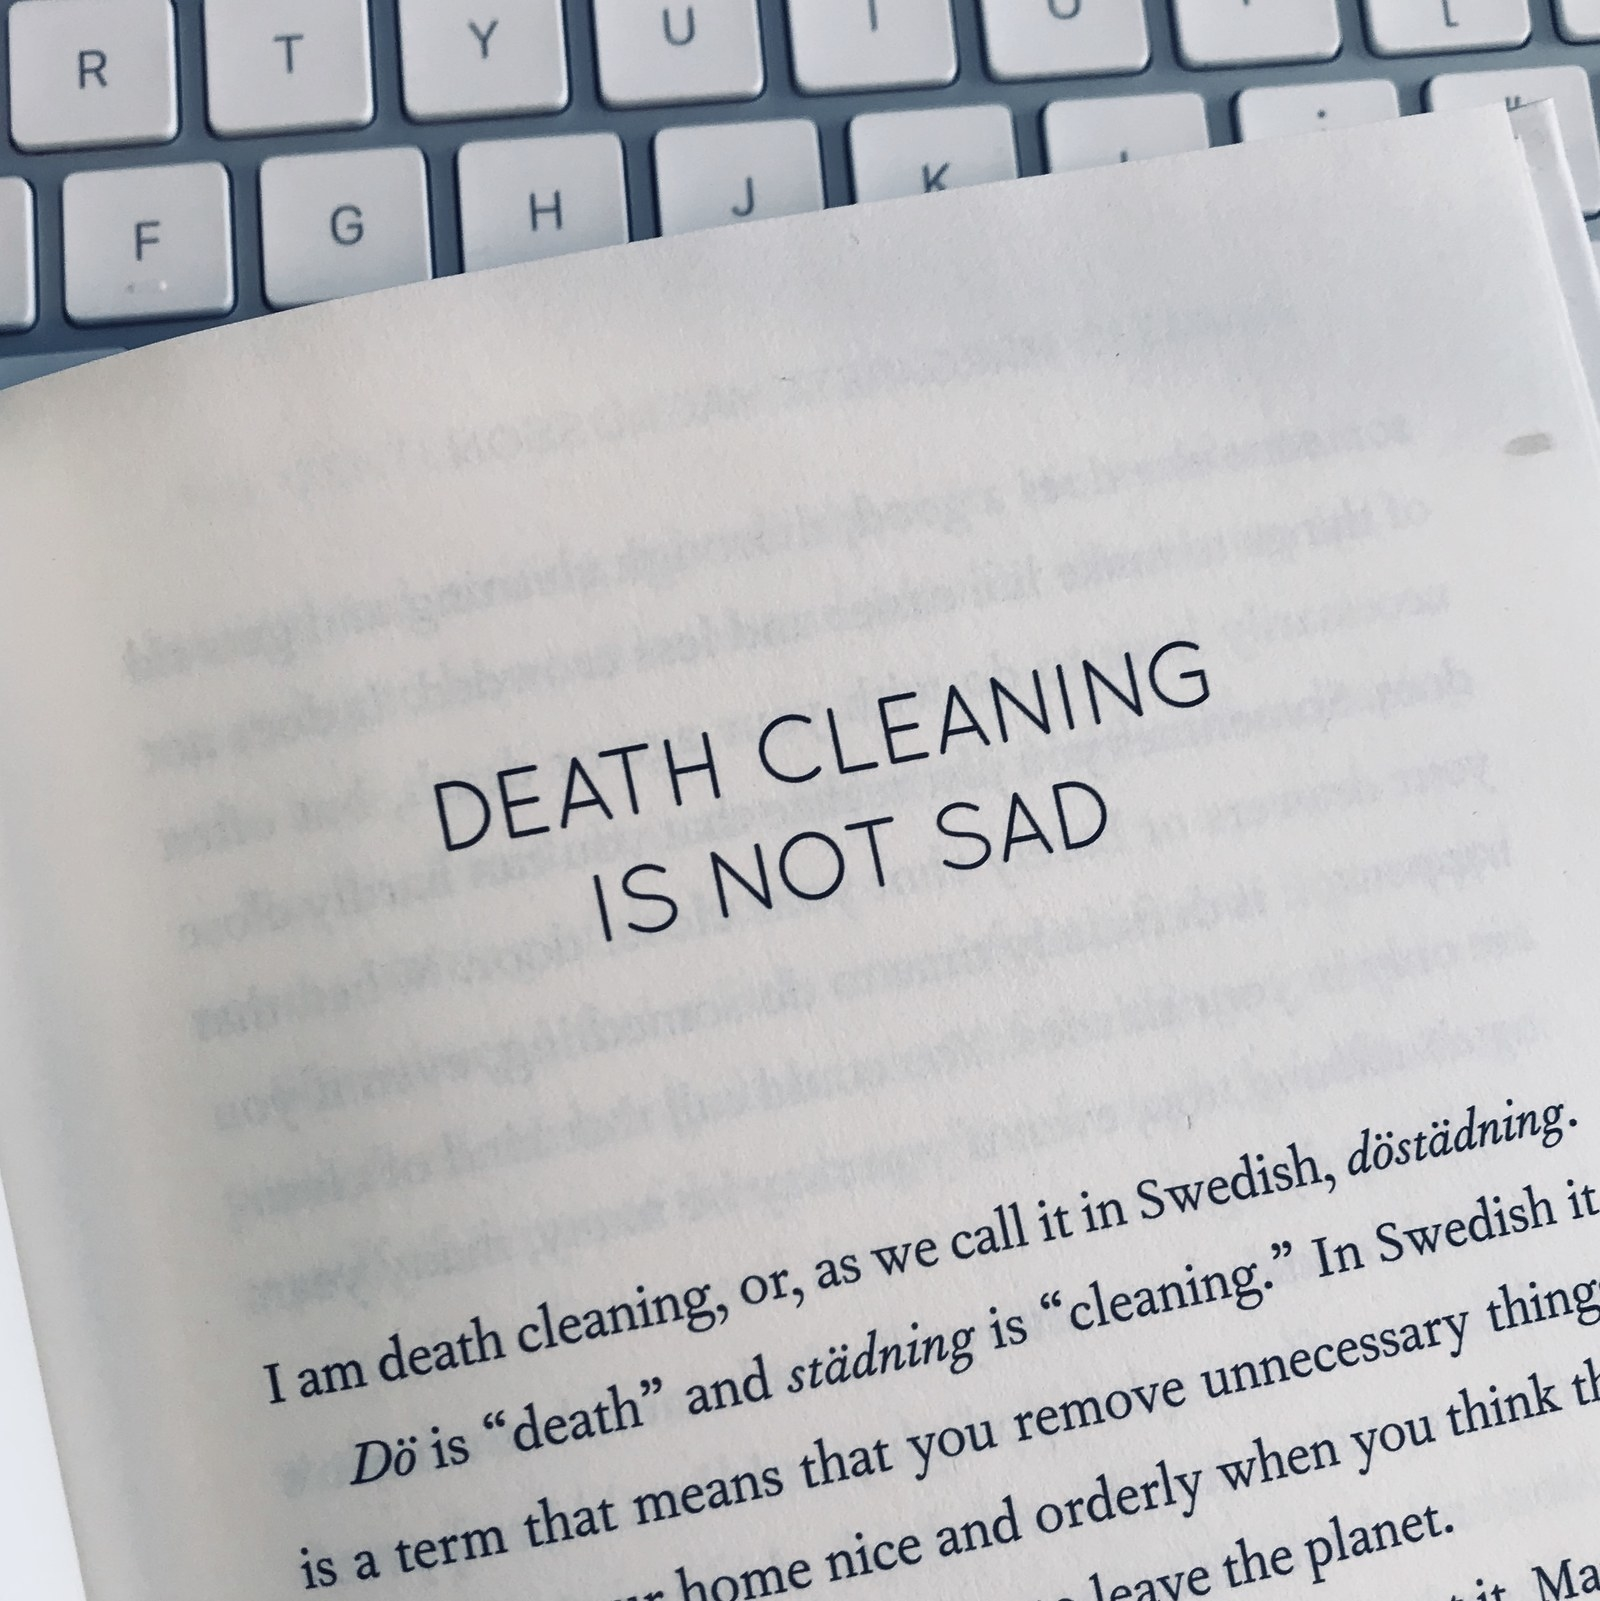 8 Things To Know About Swedish Death Cleaning: A Beginner's Guide To Swedish Death Cleaning